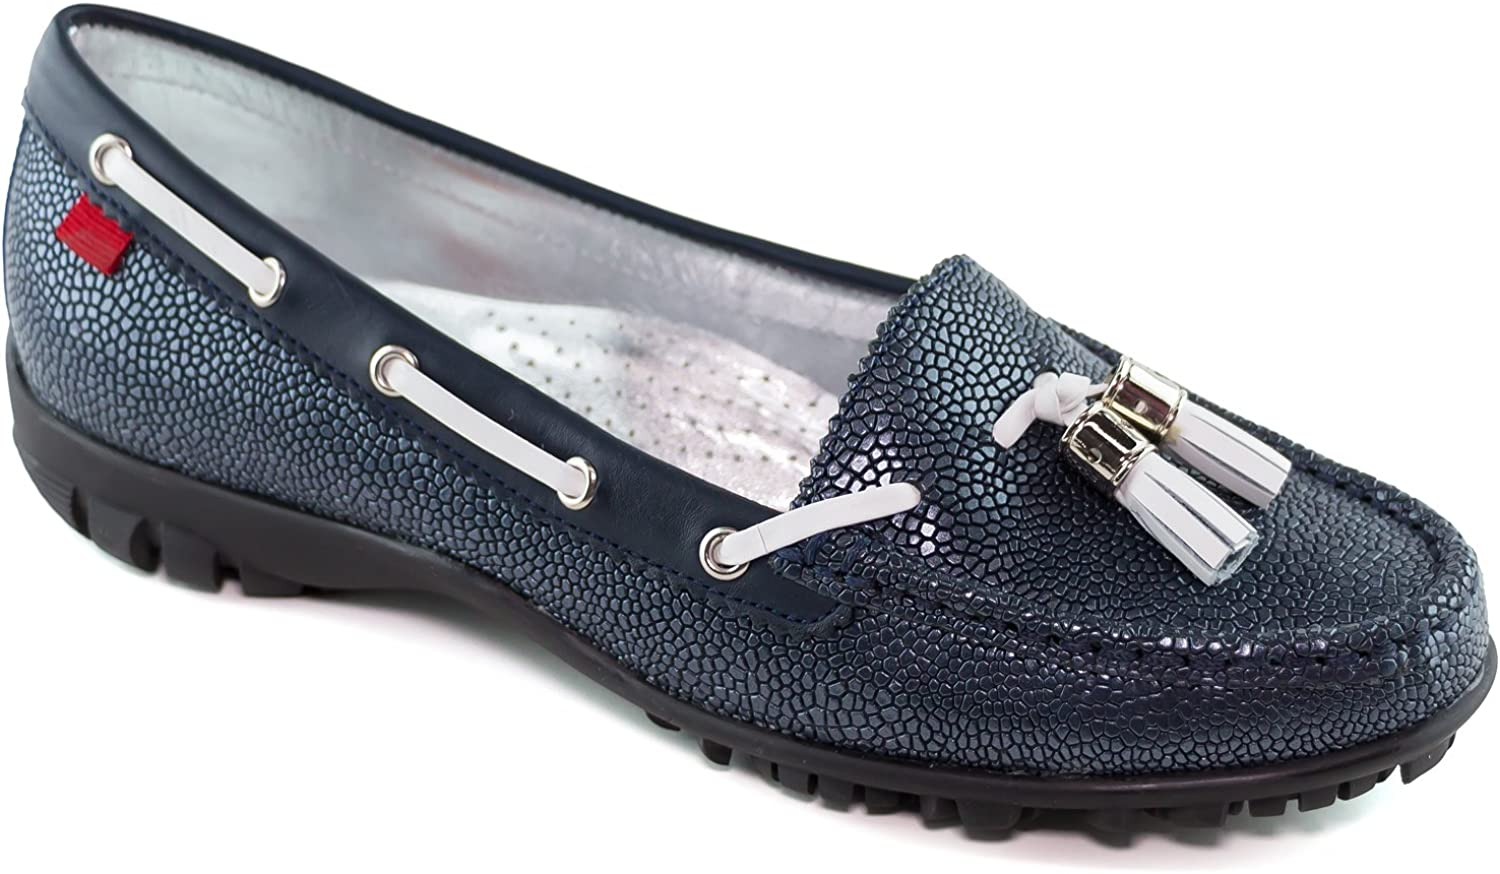 Women's Golf Light Weight Genuine Large discharge trend rank sale in Made Leather Brazil Sp